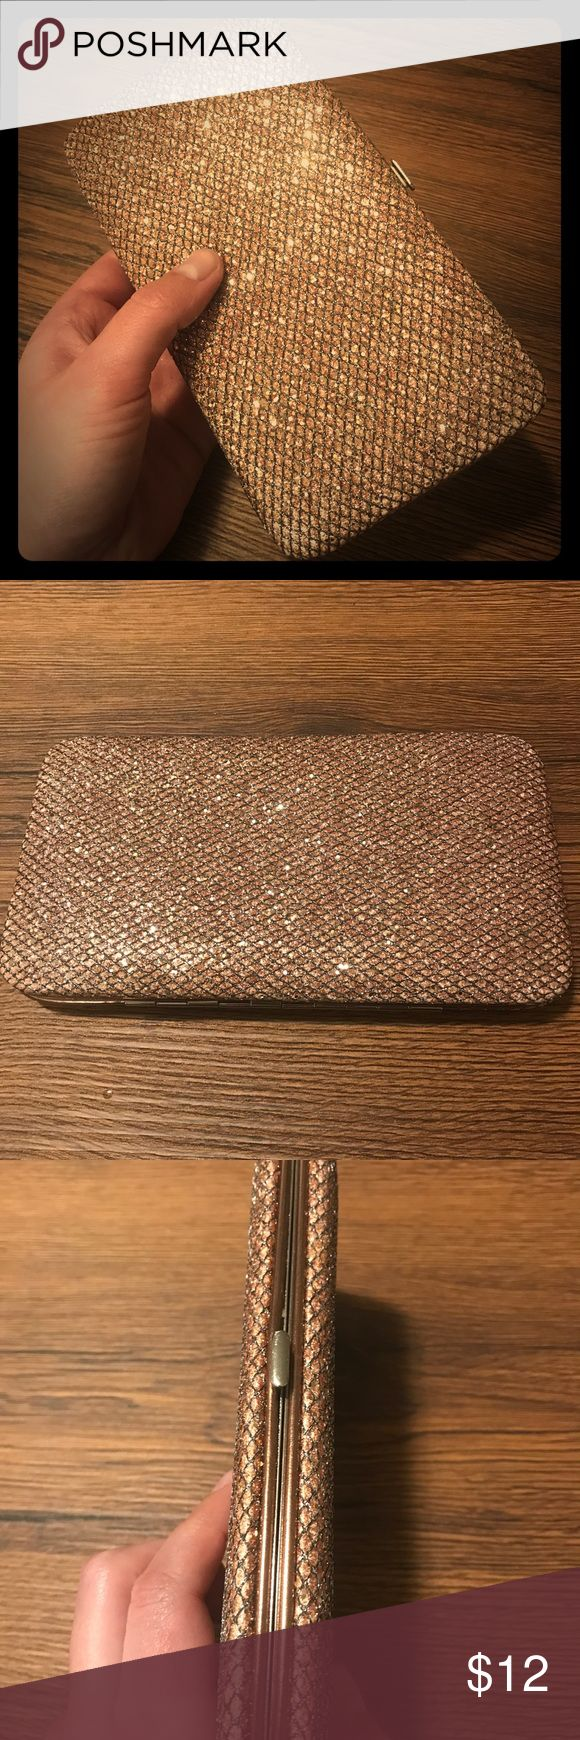 Rose Gold ✨Sparkly✨ Clutch Perfect new year's clutch!  In great condition, i took it out to a holiday party once years ago and just haven't used it since. 🤷🏻‍♀️  Comes across as more gold in the photos but is definitely rose gold.  Dimensions are approx 7x4x0.75in Bags Clutches & Wristlets